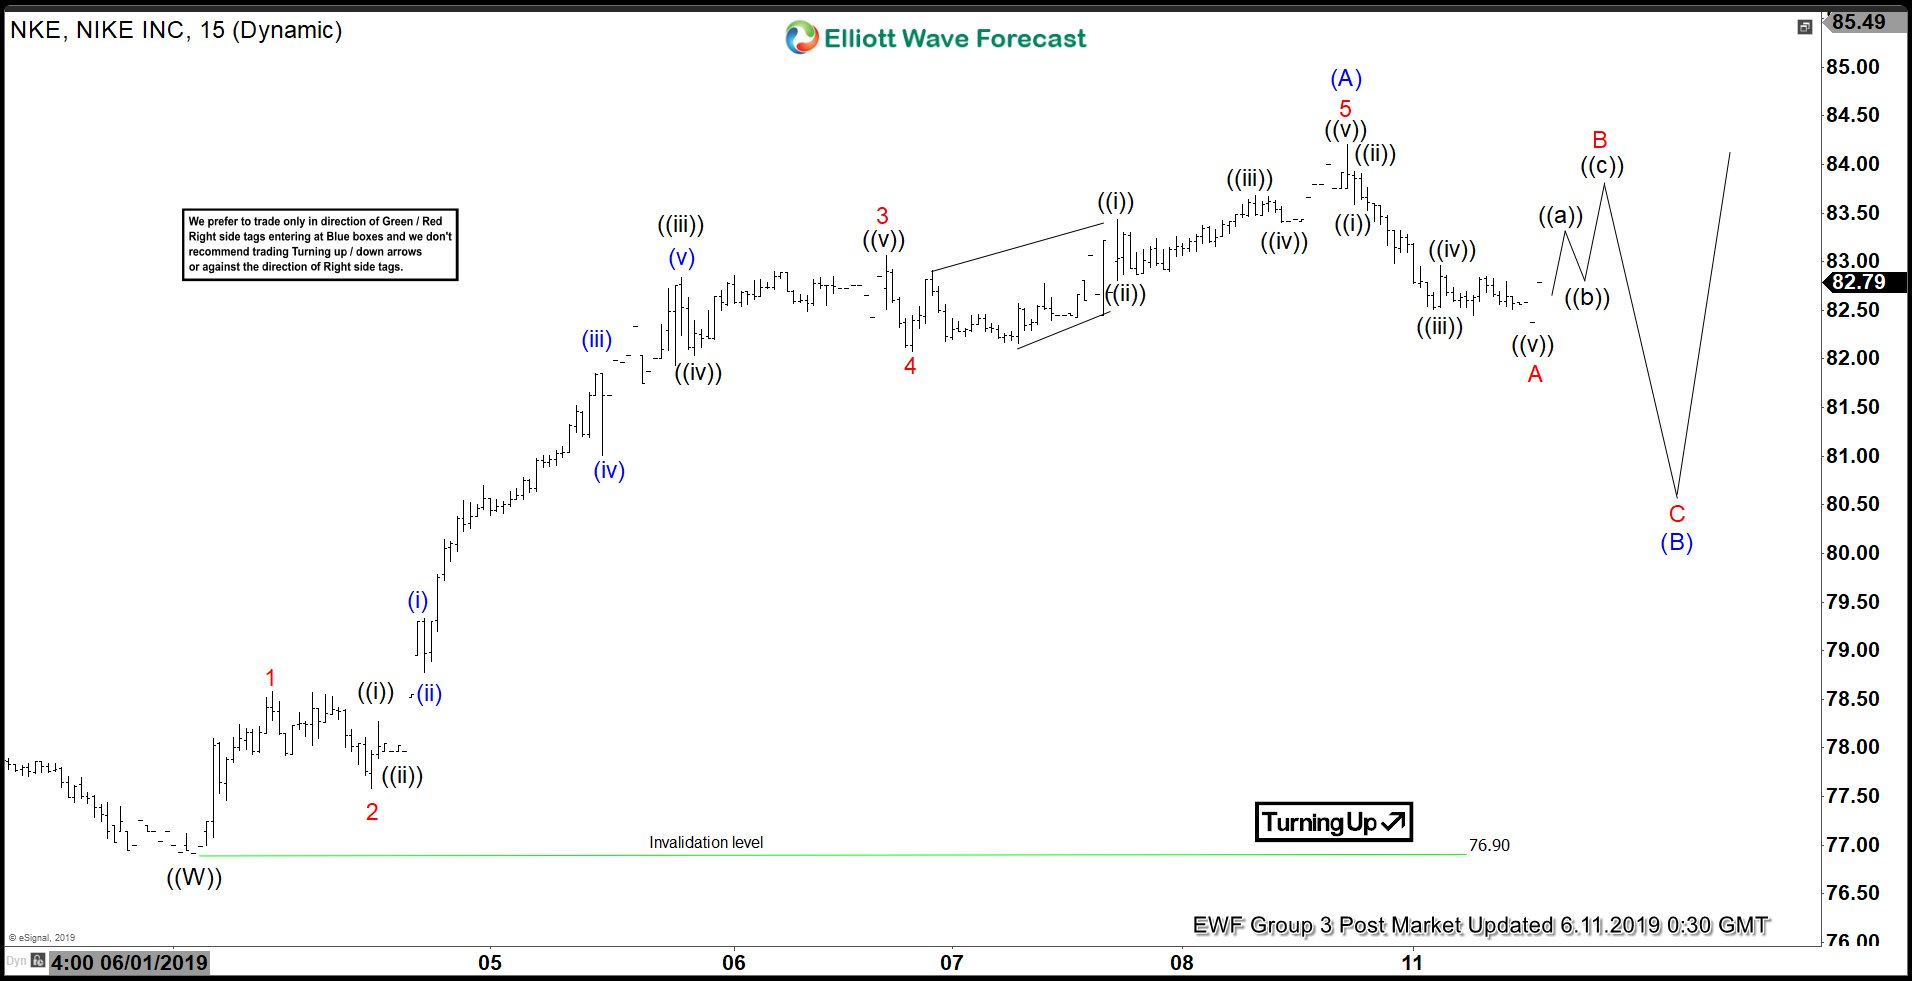 Elliott Wave View Favors More Upside in Nike (NKE)